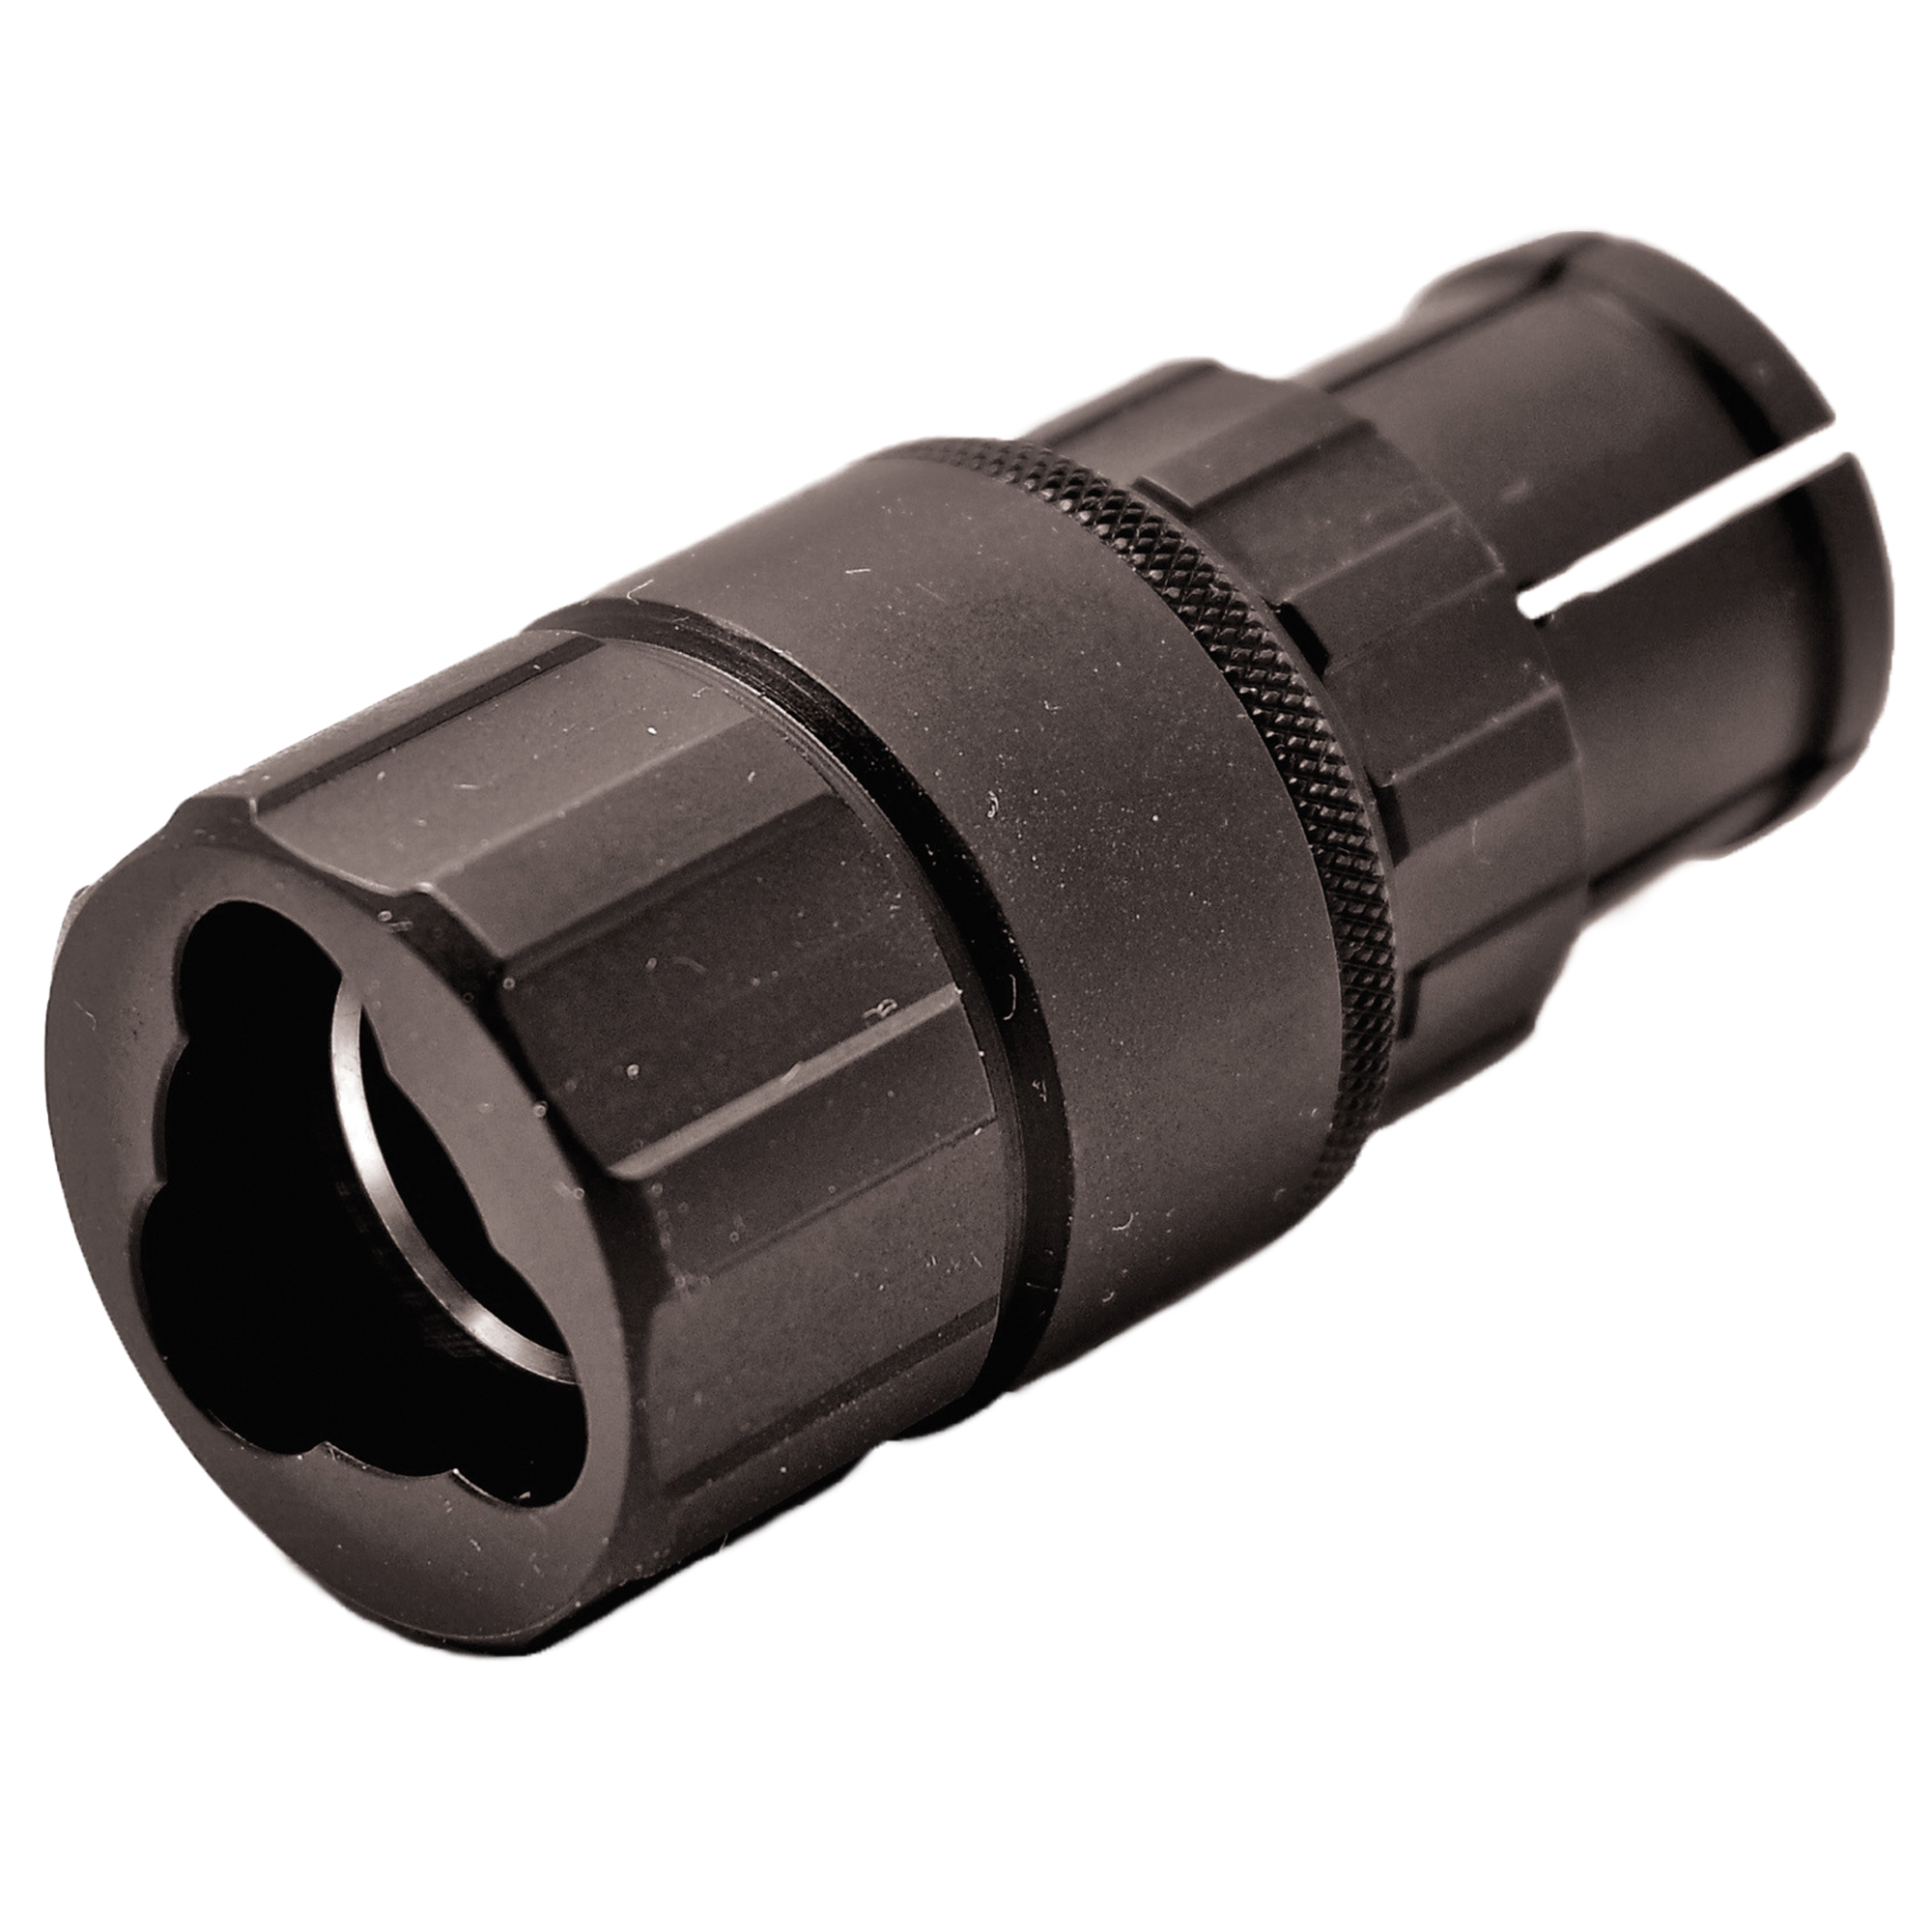 The Ti-RANT TRIAD(R) is an adapter that adds an additional element of versatility to Ti-RANT(R) series silencers by enabling users to quickly and easily install a Ti-RANT(R) onto the lugged barrel of an H&K MP-5 sub-machine gun or any fixed-barrel 9mm caliber host equipped with a lugged barrel or lugged adapter manufactured to duplicate the dimensions of the lugged H&K barrel. The Ti-RANT TRIAD(R) replaces the A.S.A.P. System in the rear of the Ti-RANT(R) series silencer and can be installed or removed in seconds. The Ti-RANT TRIAD(R) is constructed of heat treated 17-4 stainless steel and features a durable and corrosion resistant matte black nitride finish. Users can easily disassemble the Ti-RANT TRIAD(R) with no tools to perform cleaning and/or maintenance.